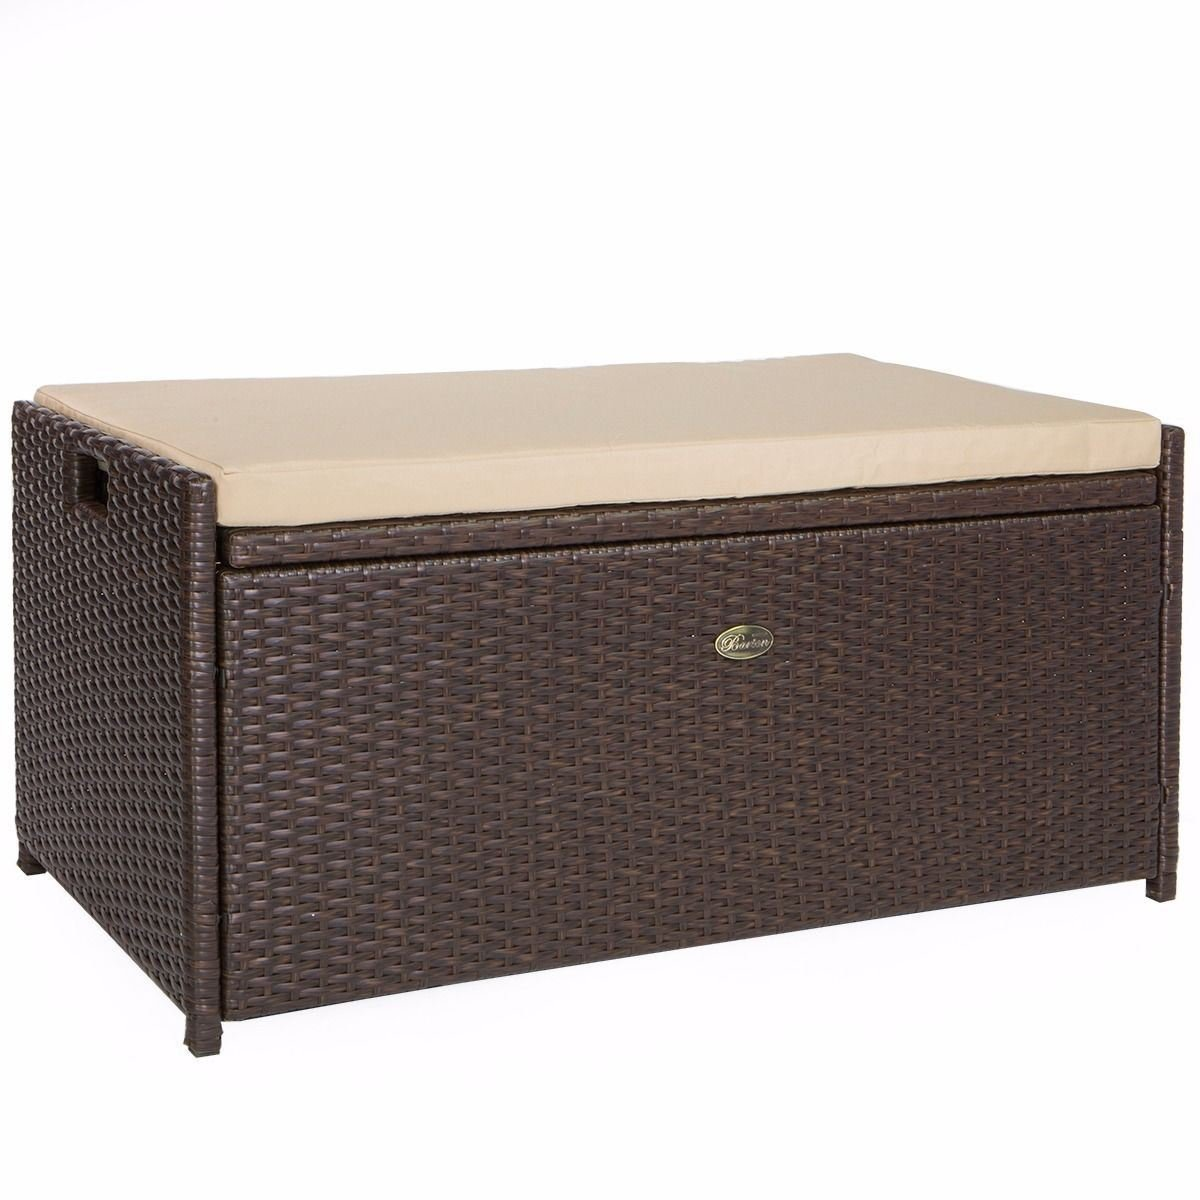 Enjoyable Barton Outdoor Storage Bench Rattan Style Deck Box Wicker Patio Furniture Water Resistance W Seat Cushion 60 Gallon Brown Creativecarmelina Interior Chair Design Creativecarmelinacom